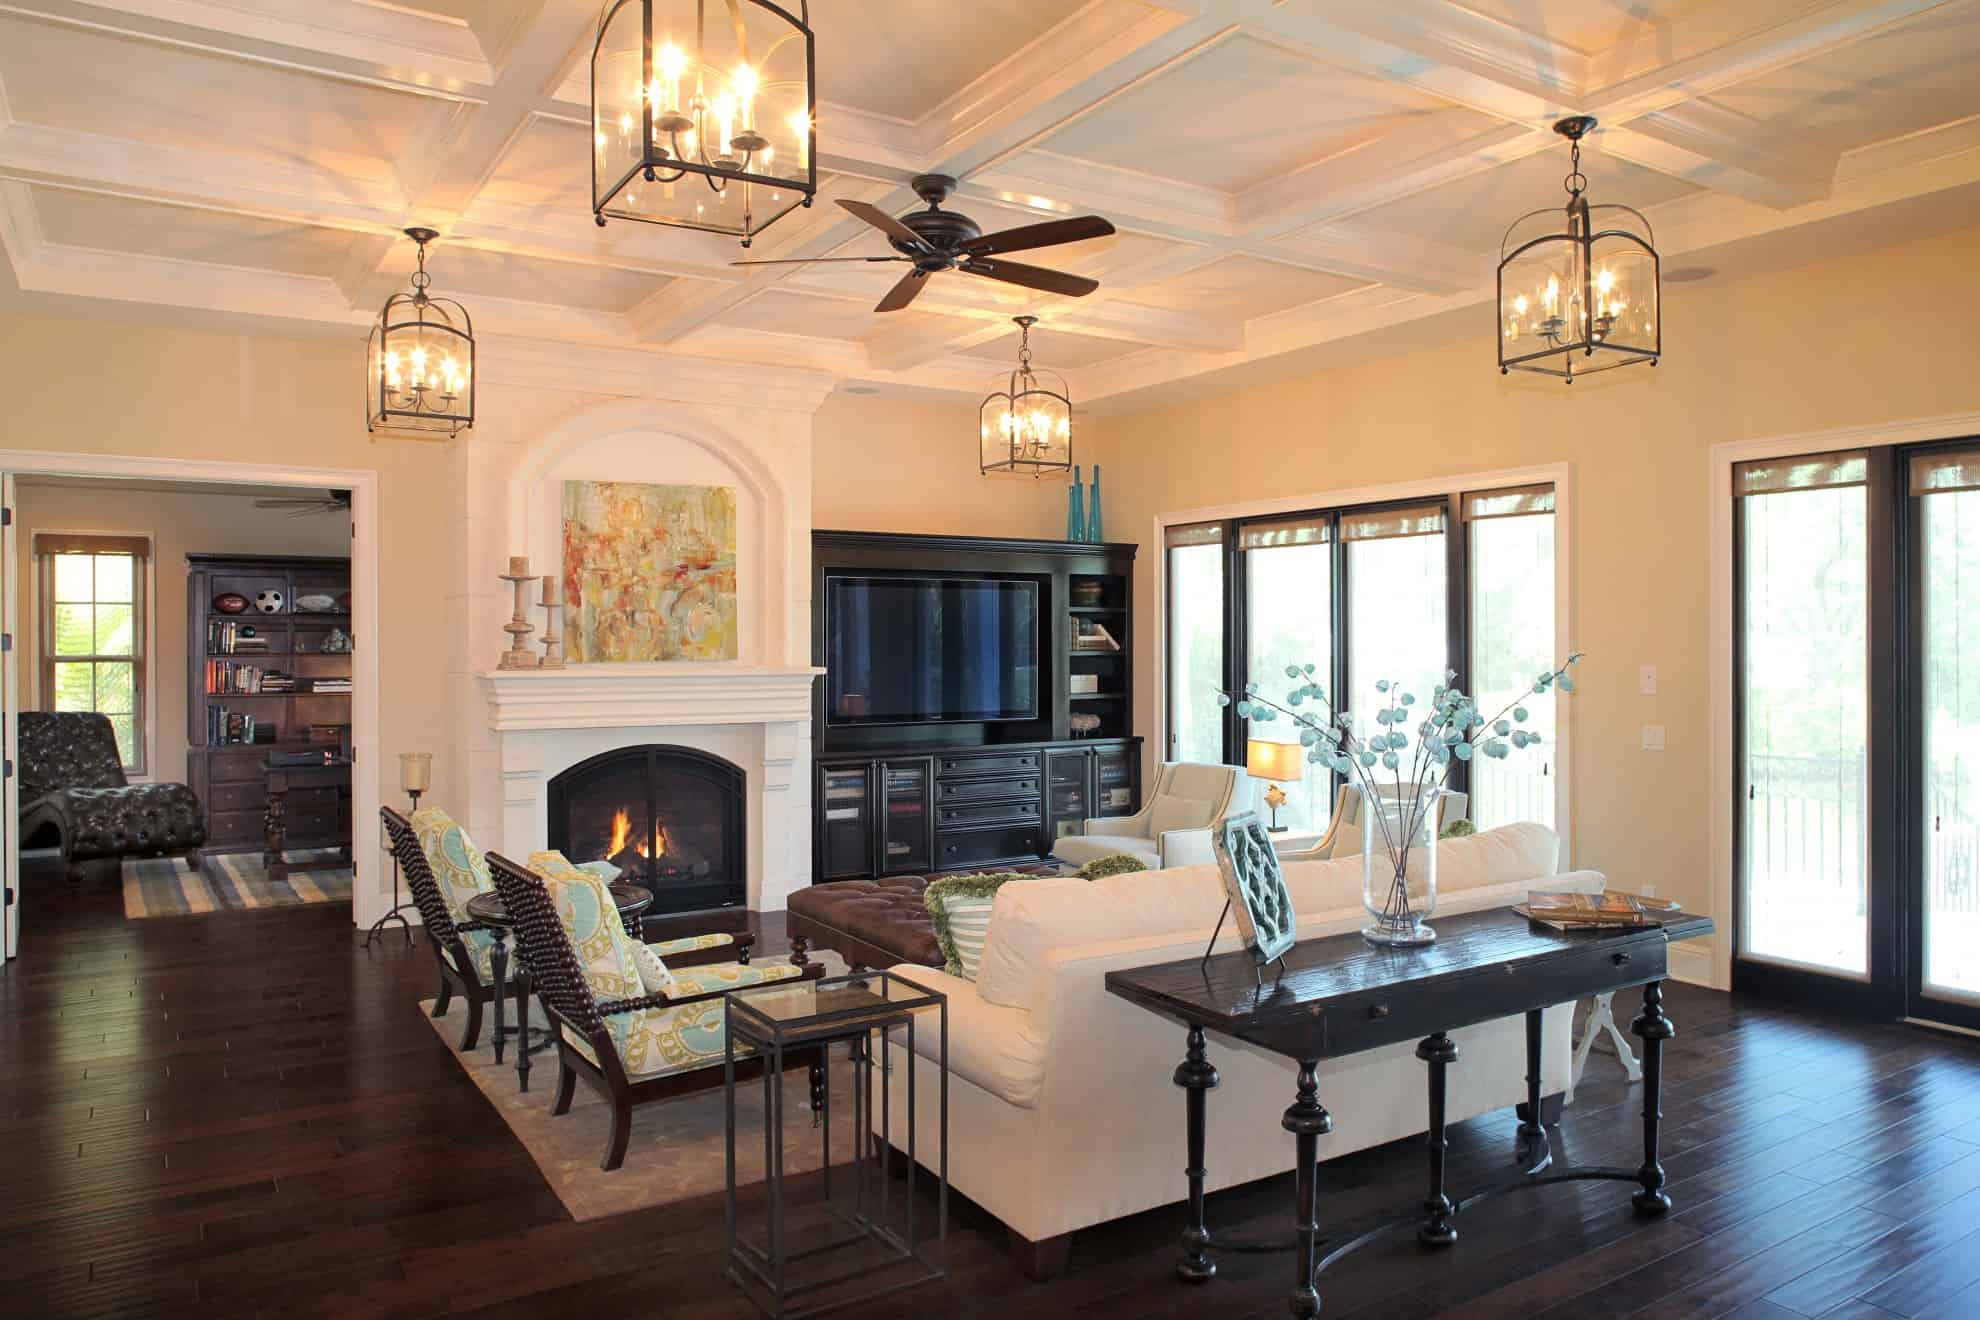 Great rooms fireplaces luxury estates devonshire custom homes Custom luxury home design ideas